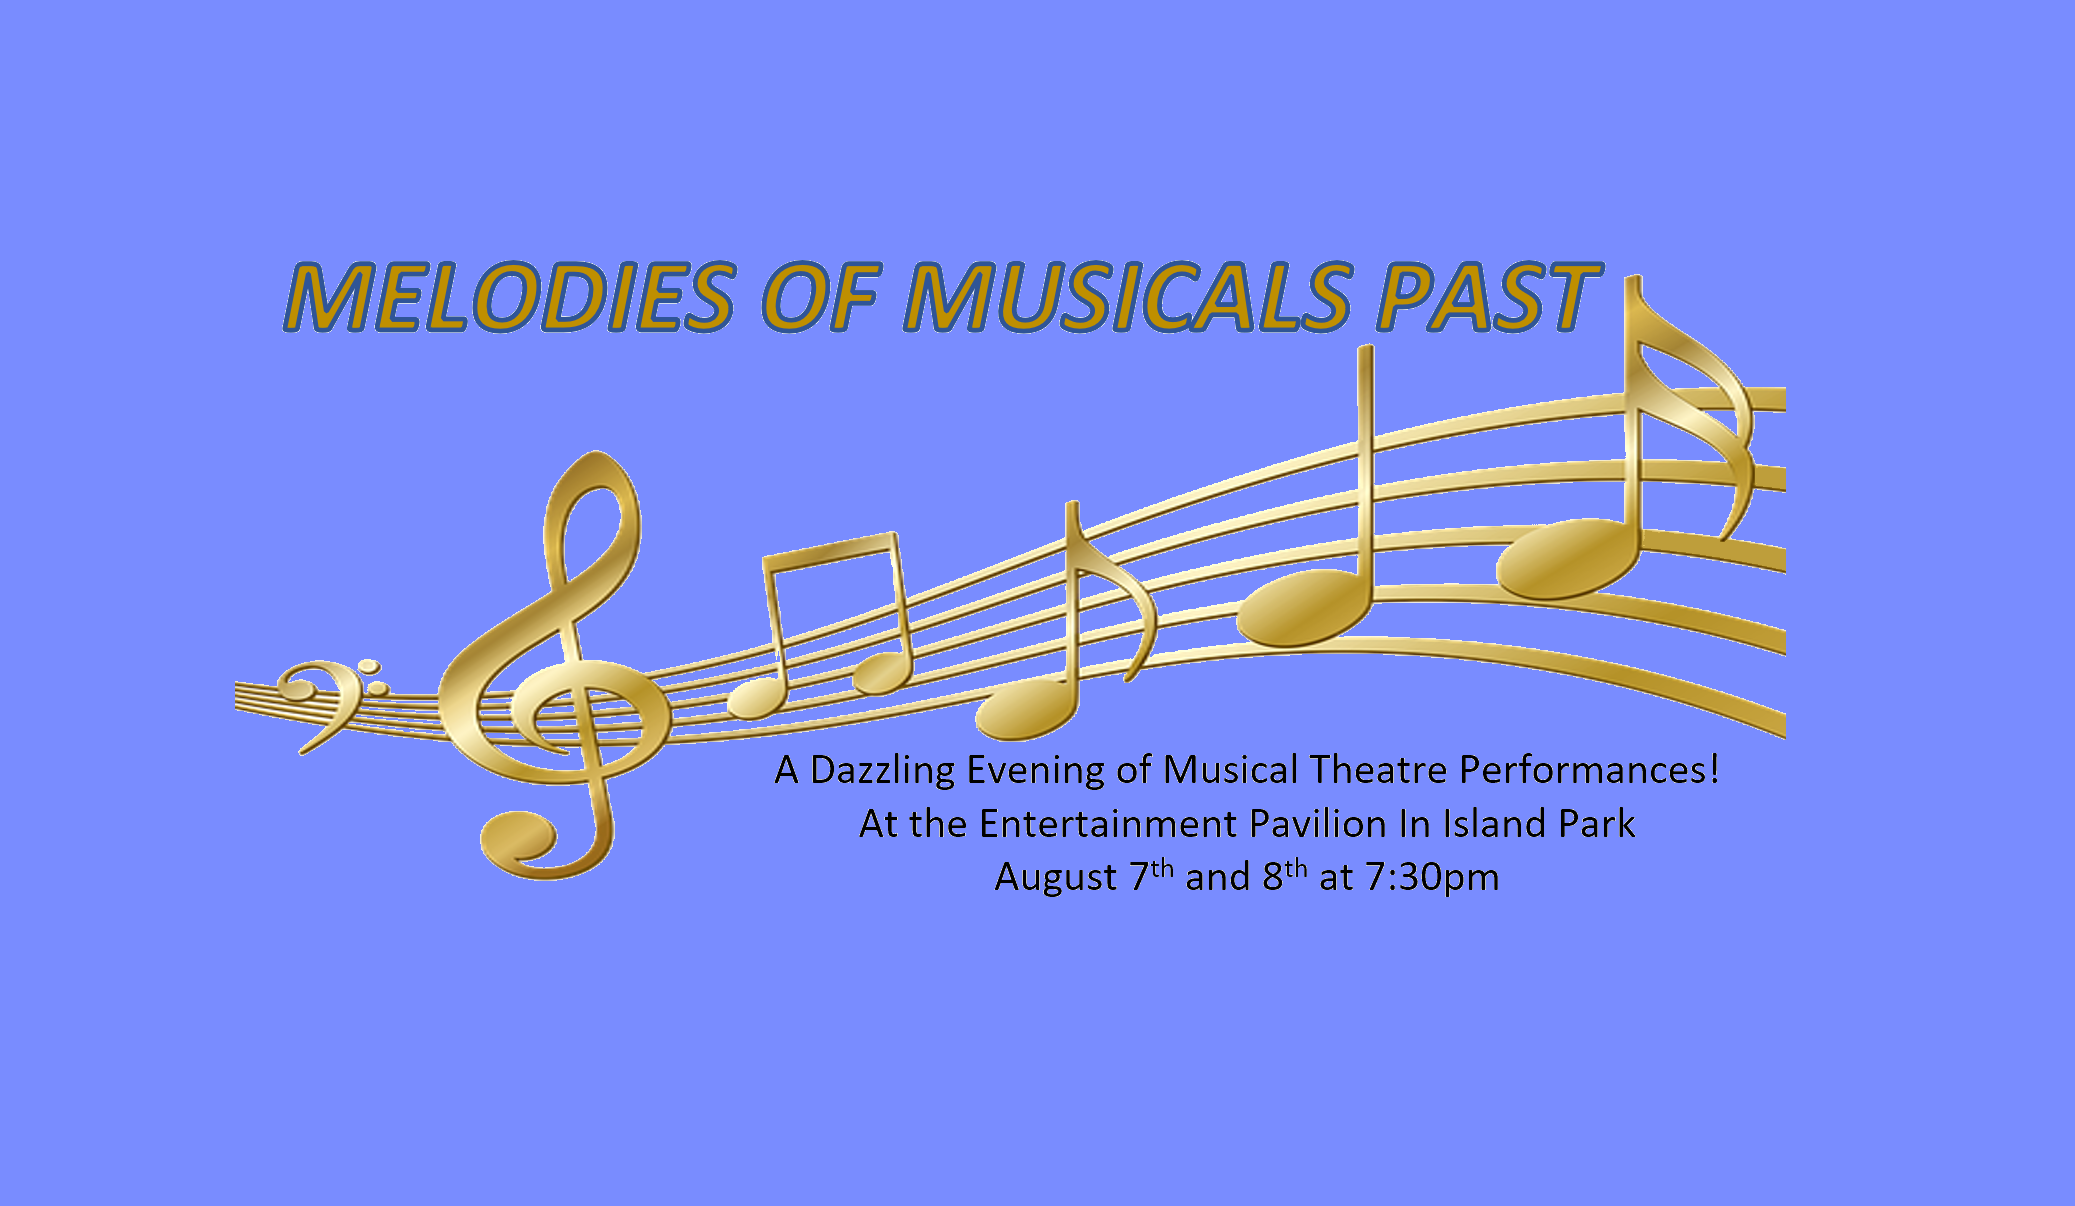 Melodies of Musicals Past